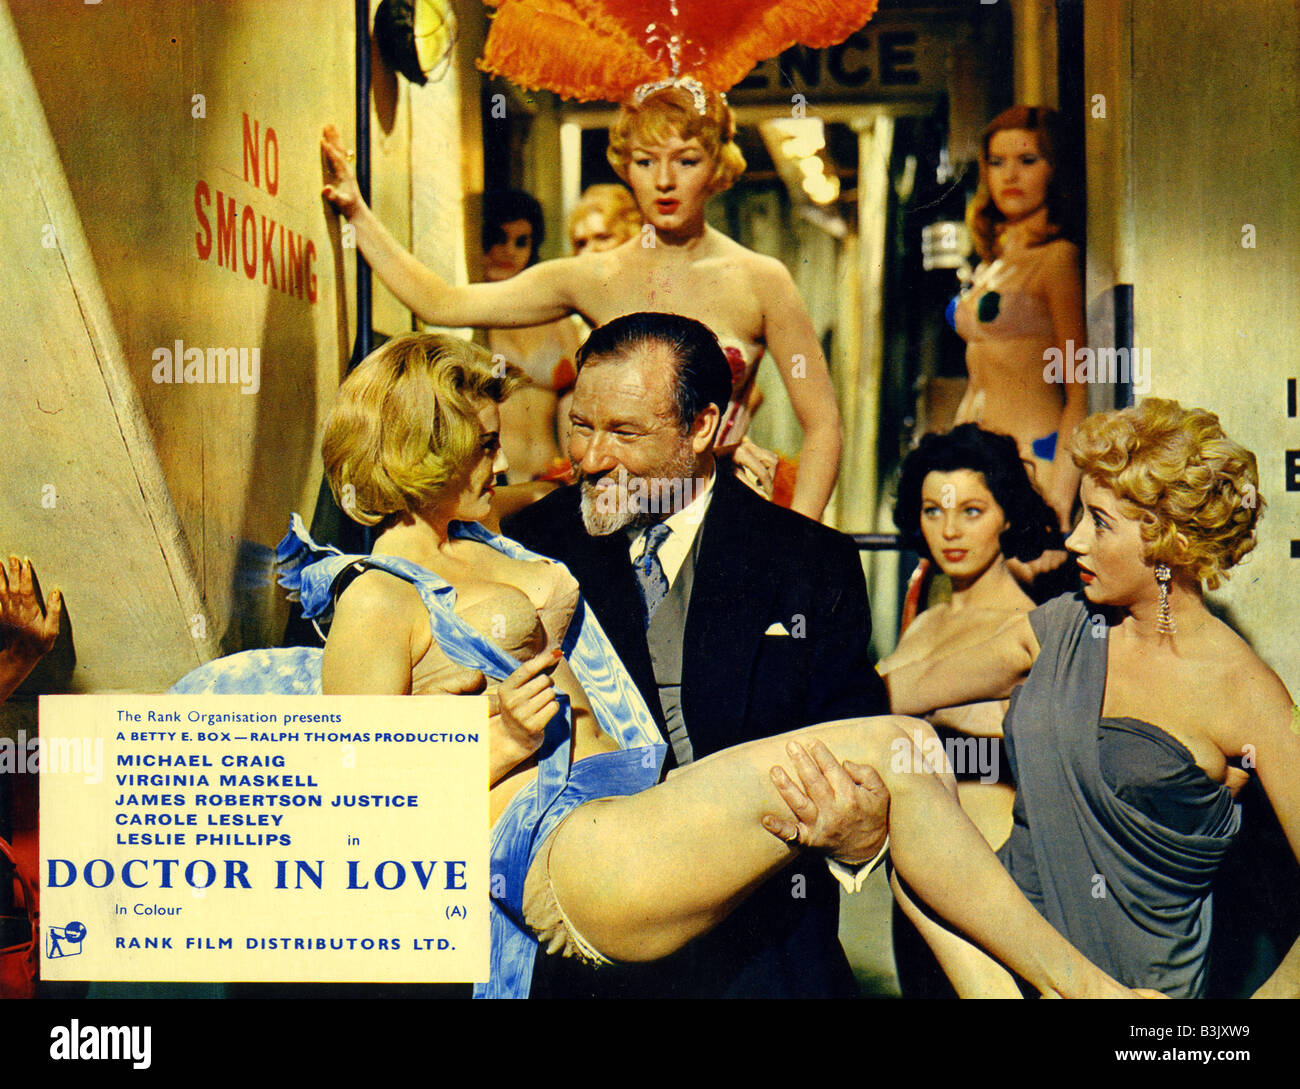 DOCTOR IN LOVE  1960 Rank film with James Robertson Justice and Joan Sims behind him - Stock Image